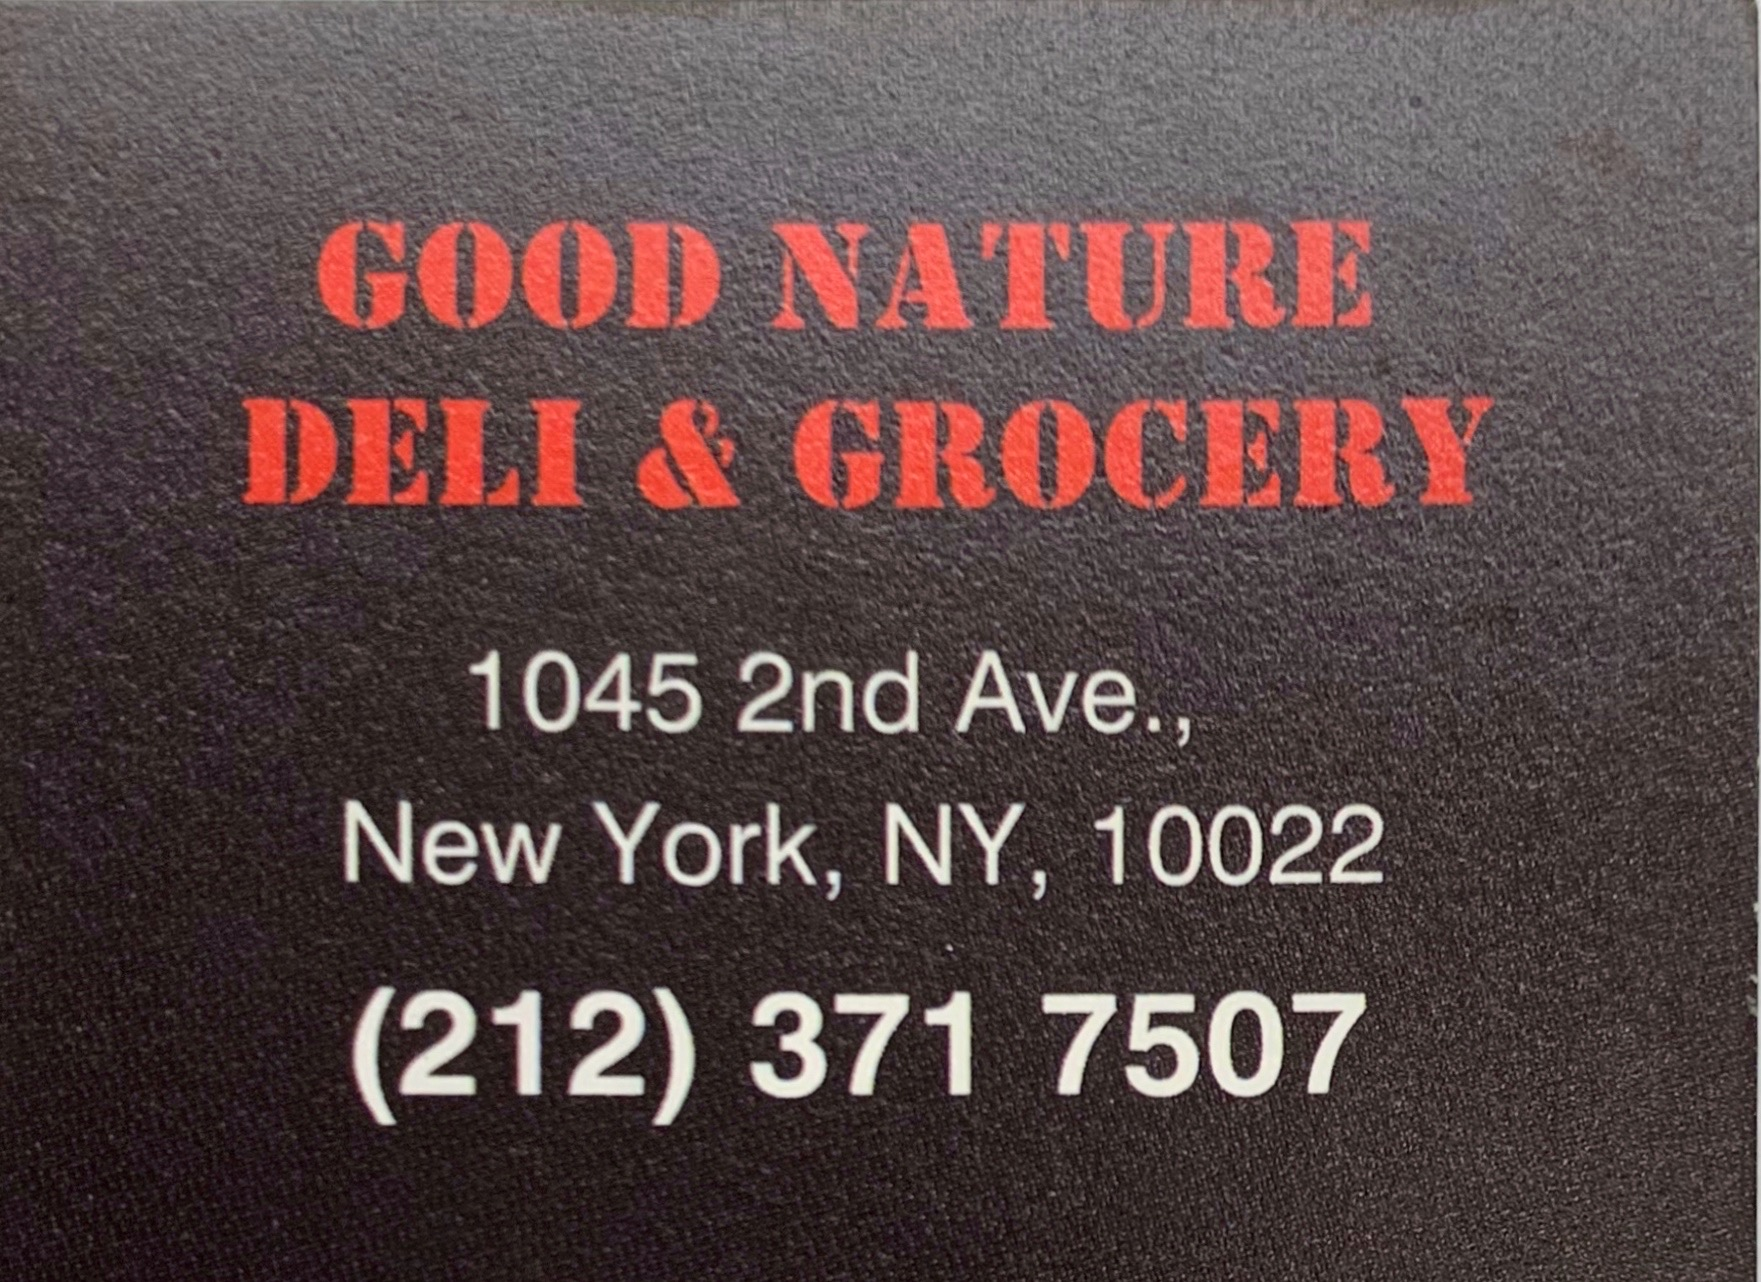 Uptown Manhattan- Find our Party-Sized mixers at Good Nature Deli & Grocery (2nd Ave x 55th st)